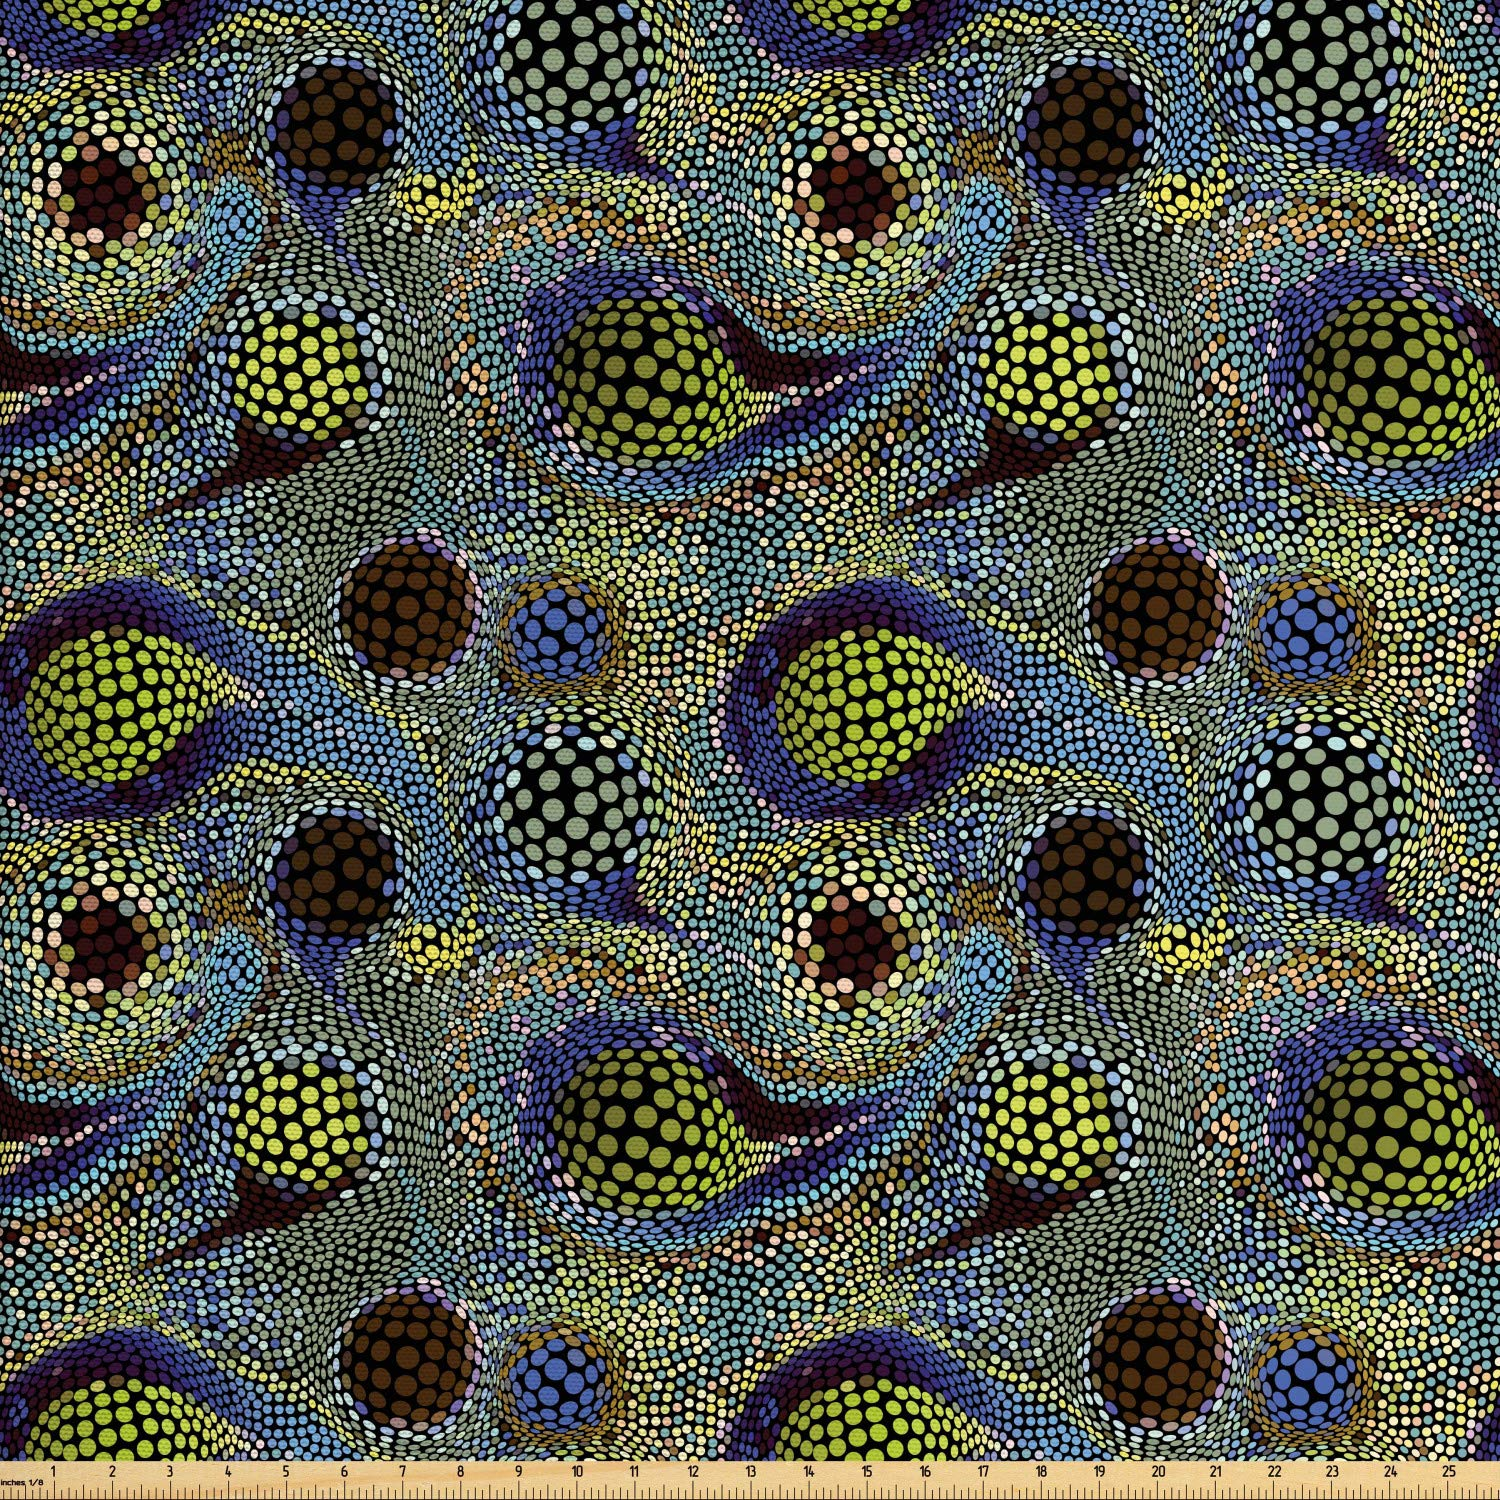 Ambesonne Paisley Fabric by The Yard, Circles Pattern with Persian Folklore Inspired Teardrop Motifs Oriental Design, Decorative Fabric for Upholstery and Home Accents, 1 Yard, Yellow Blue